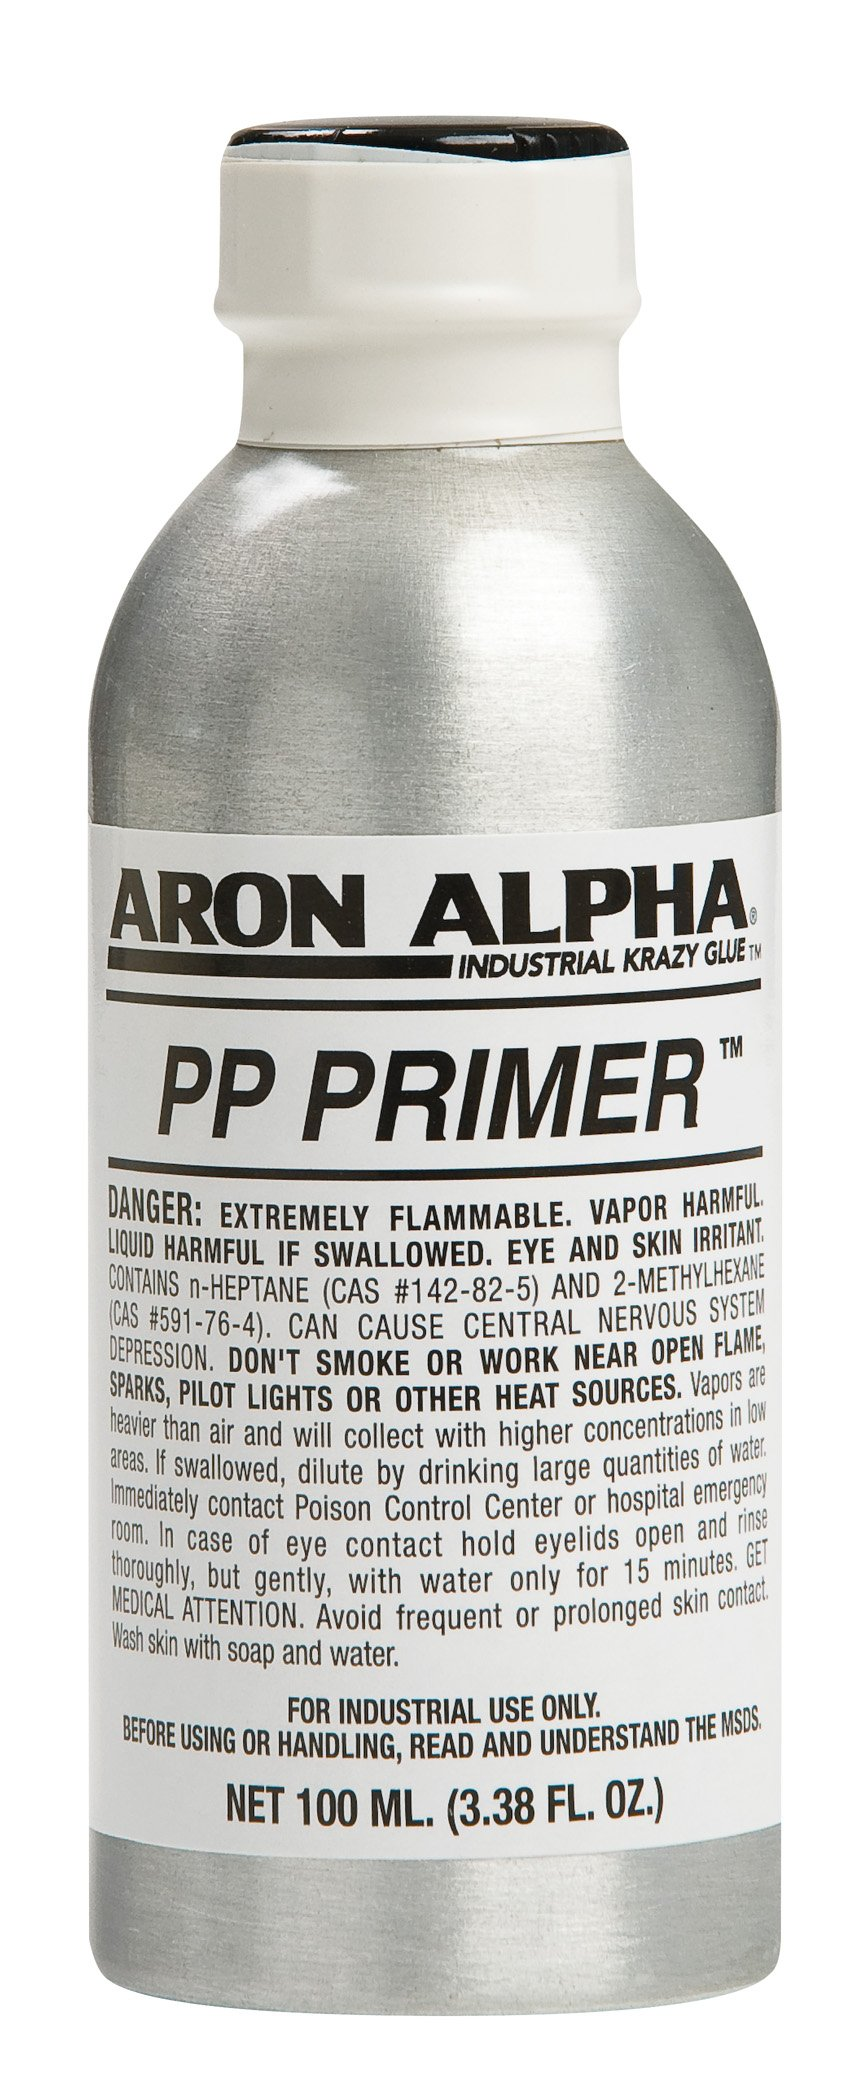 Aron Alpha PP Primer For Use With Instant Adhesives To Bond Polyolefine Plastics, 100ml (3.38 oz) by Aron Alpha Industrial Krazy Glue